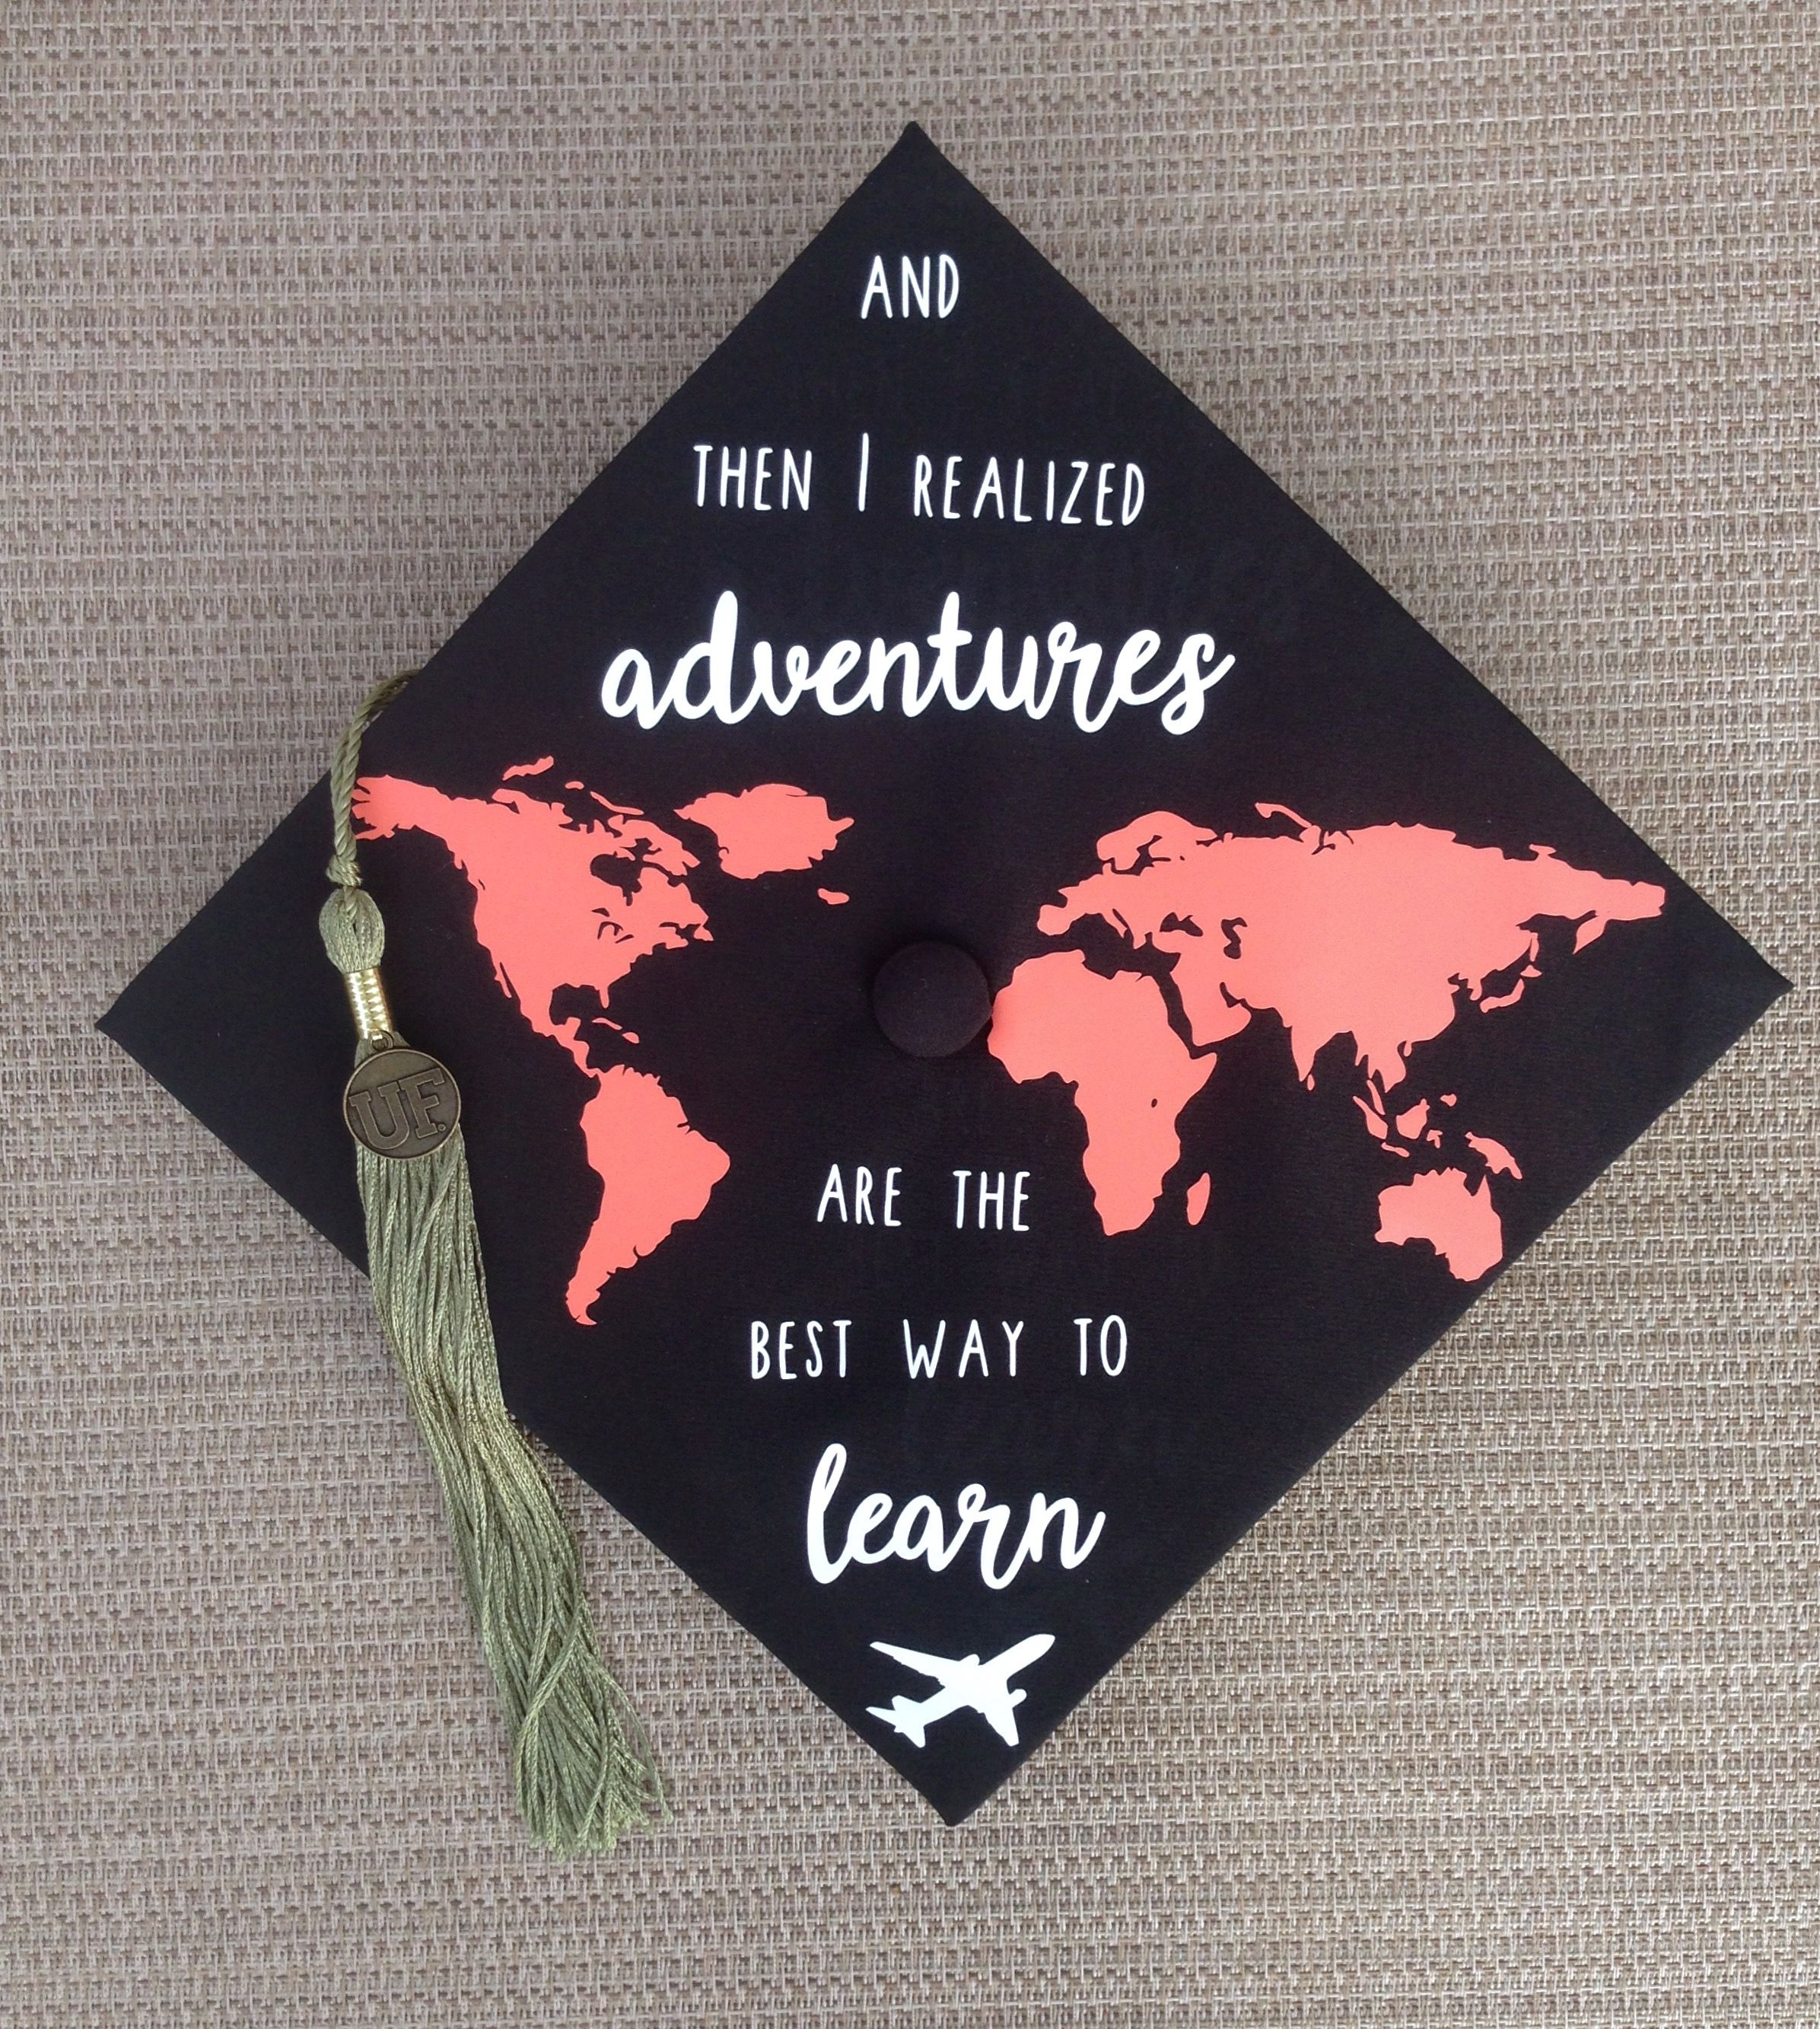 Soothing I We Havebeen Doing That Our Lives This Cap Not Grad Cap Decorating Ideas Be All Tired Moms Several Years Grads Graduation Cap Decorations Nursing Graduation Cap Decorations Sitting